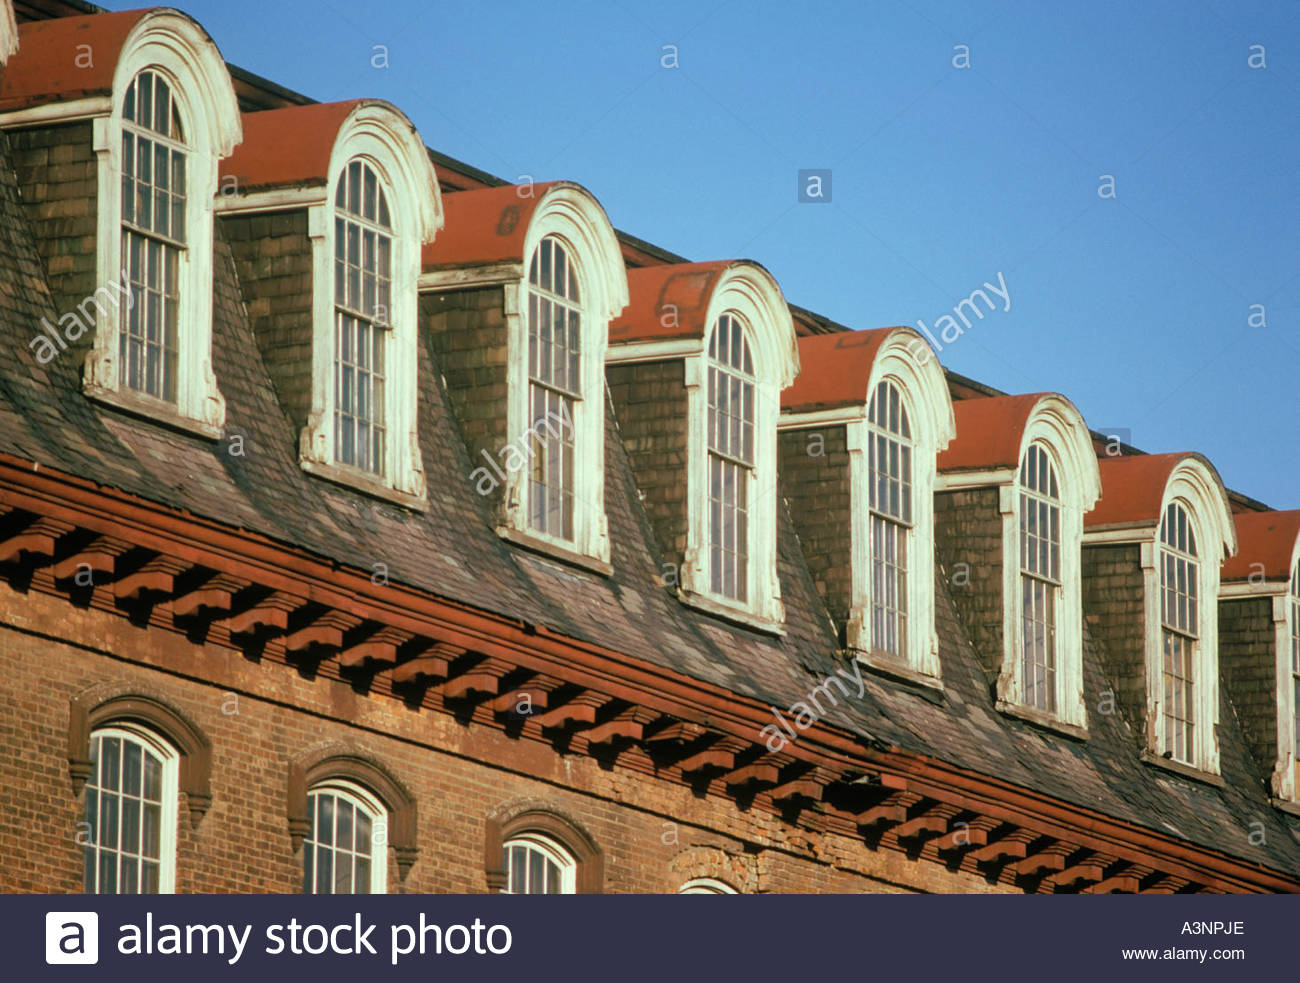 harmony textile mills mansard roof and dormer windows of